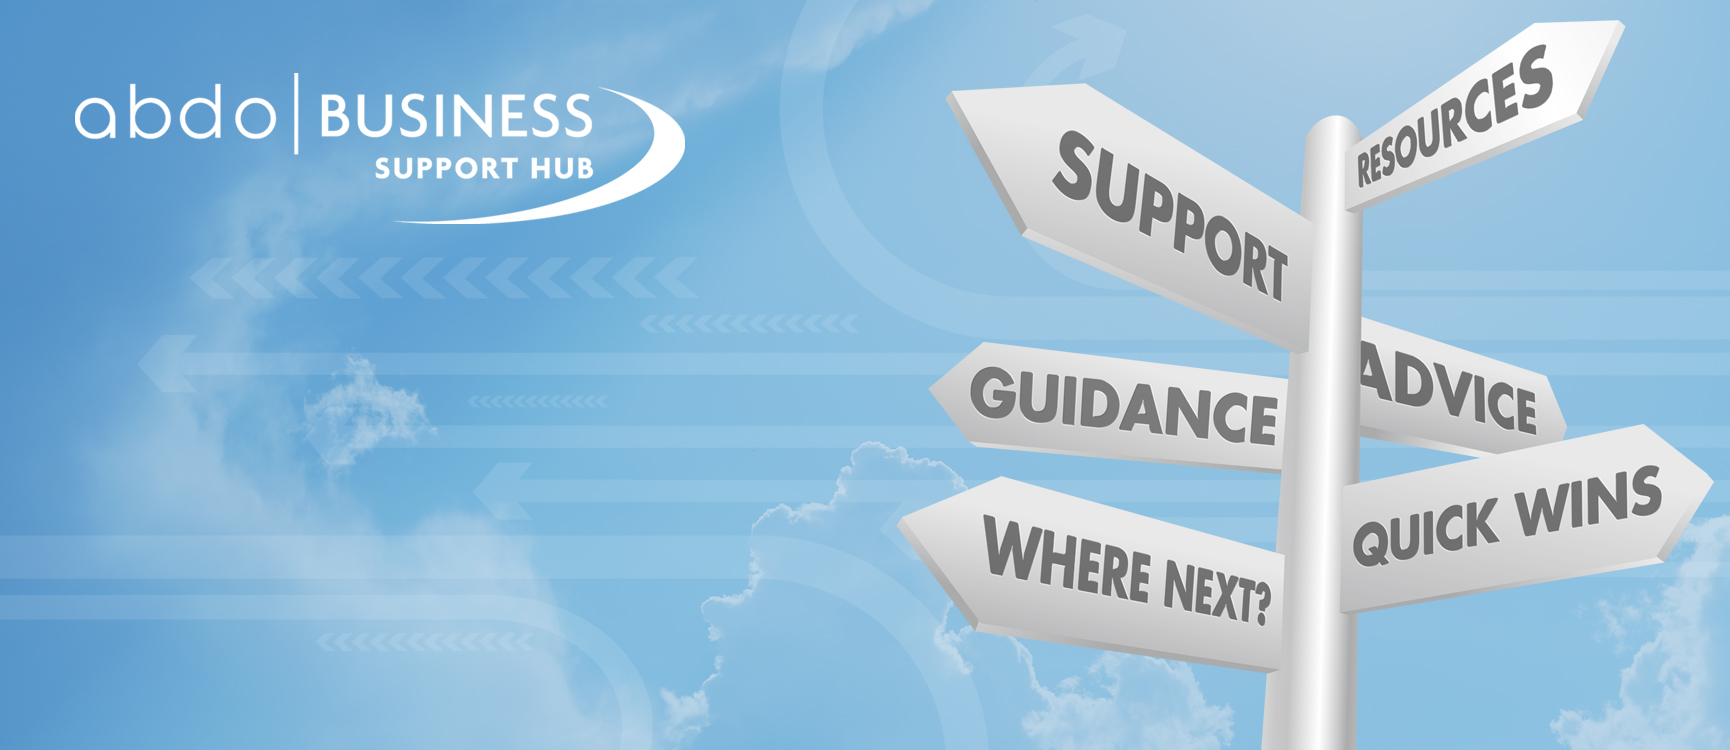 Business support hub